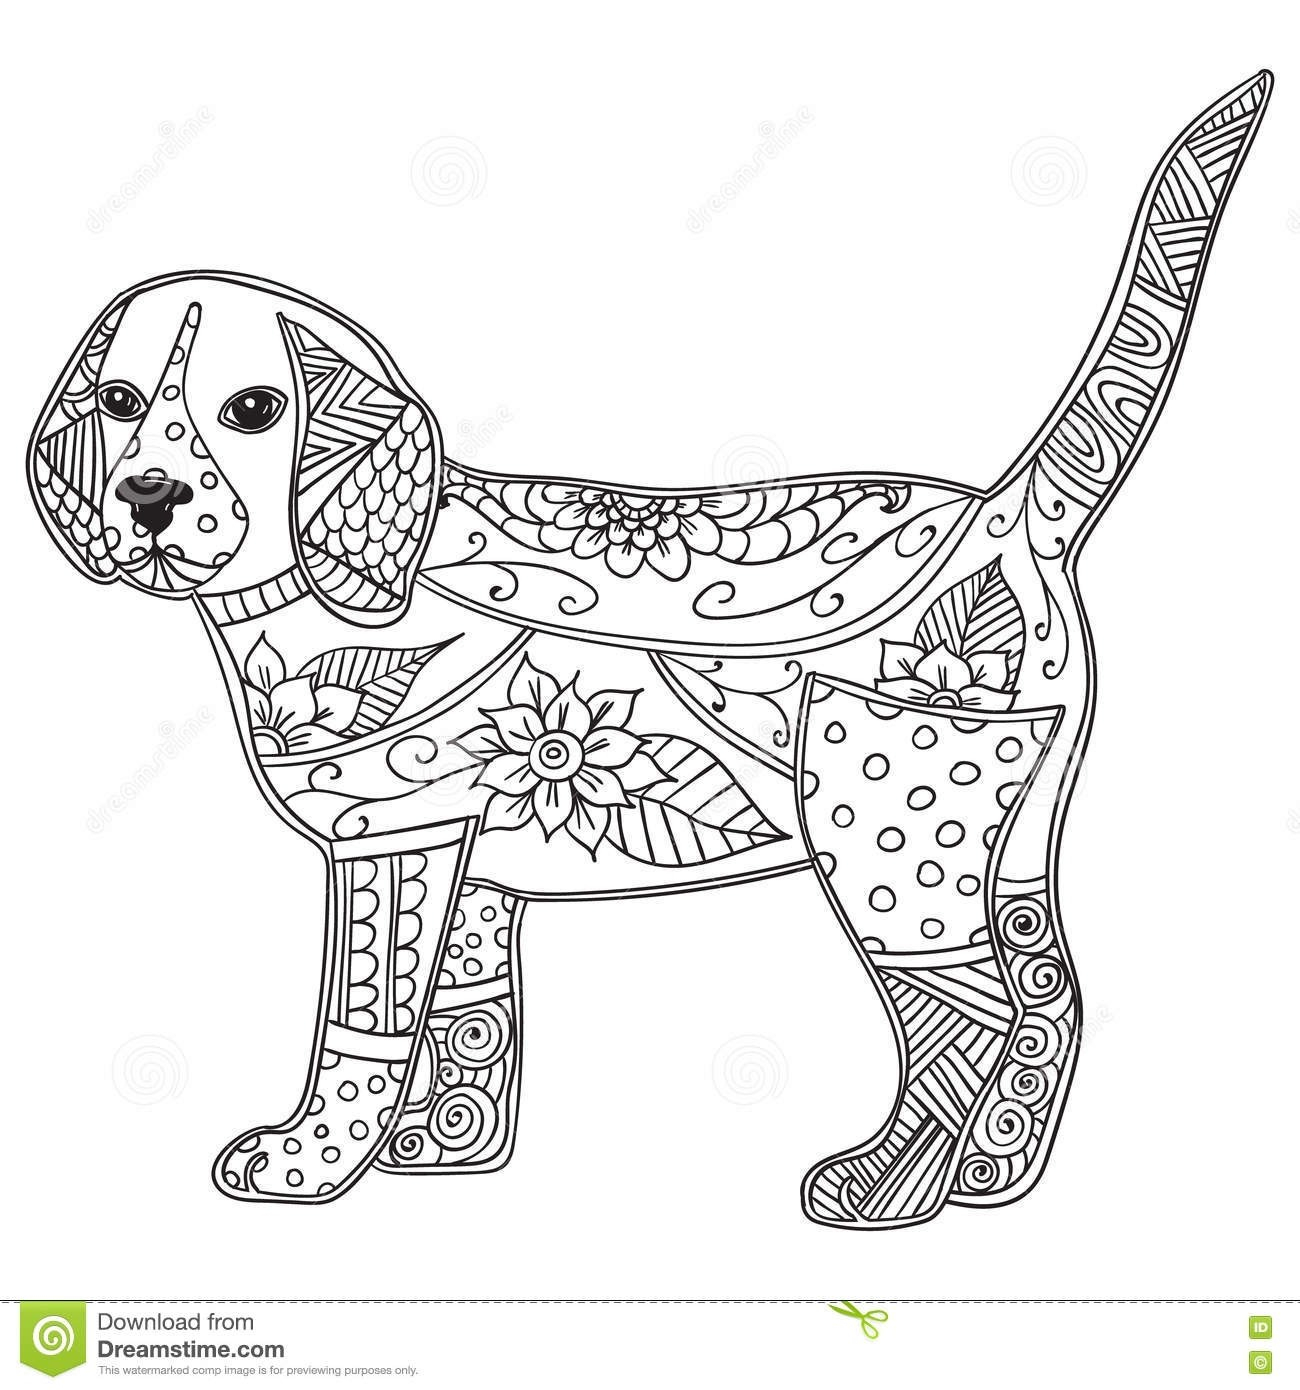 Dog Coloring Pages For Adults Adult Dog Coloring Pages Collection 7 Q Antistress Or Children Page